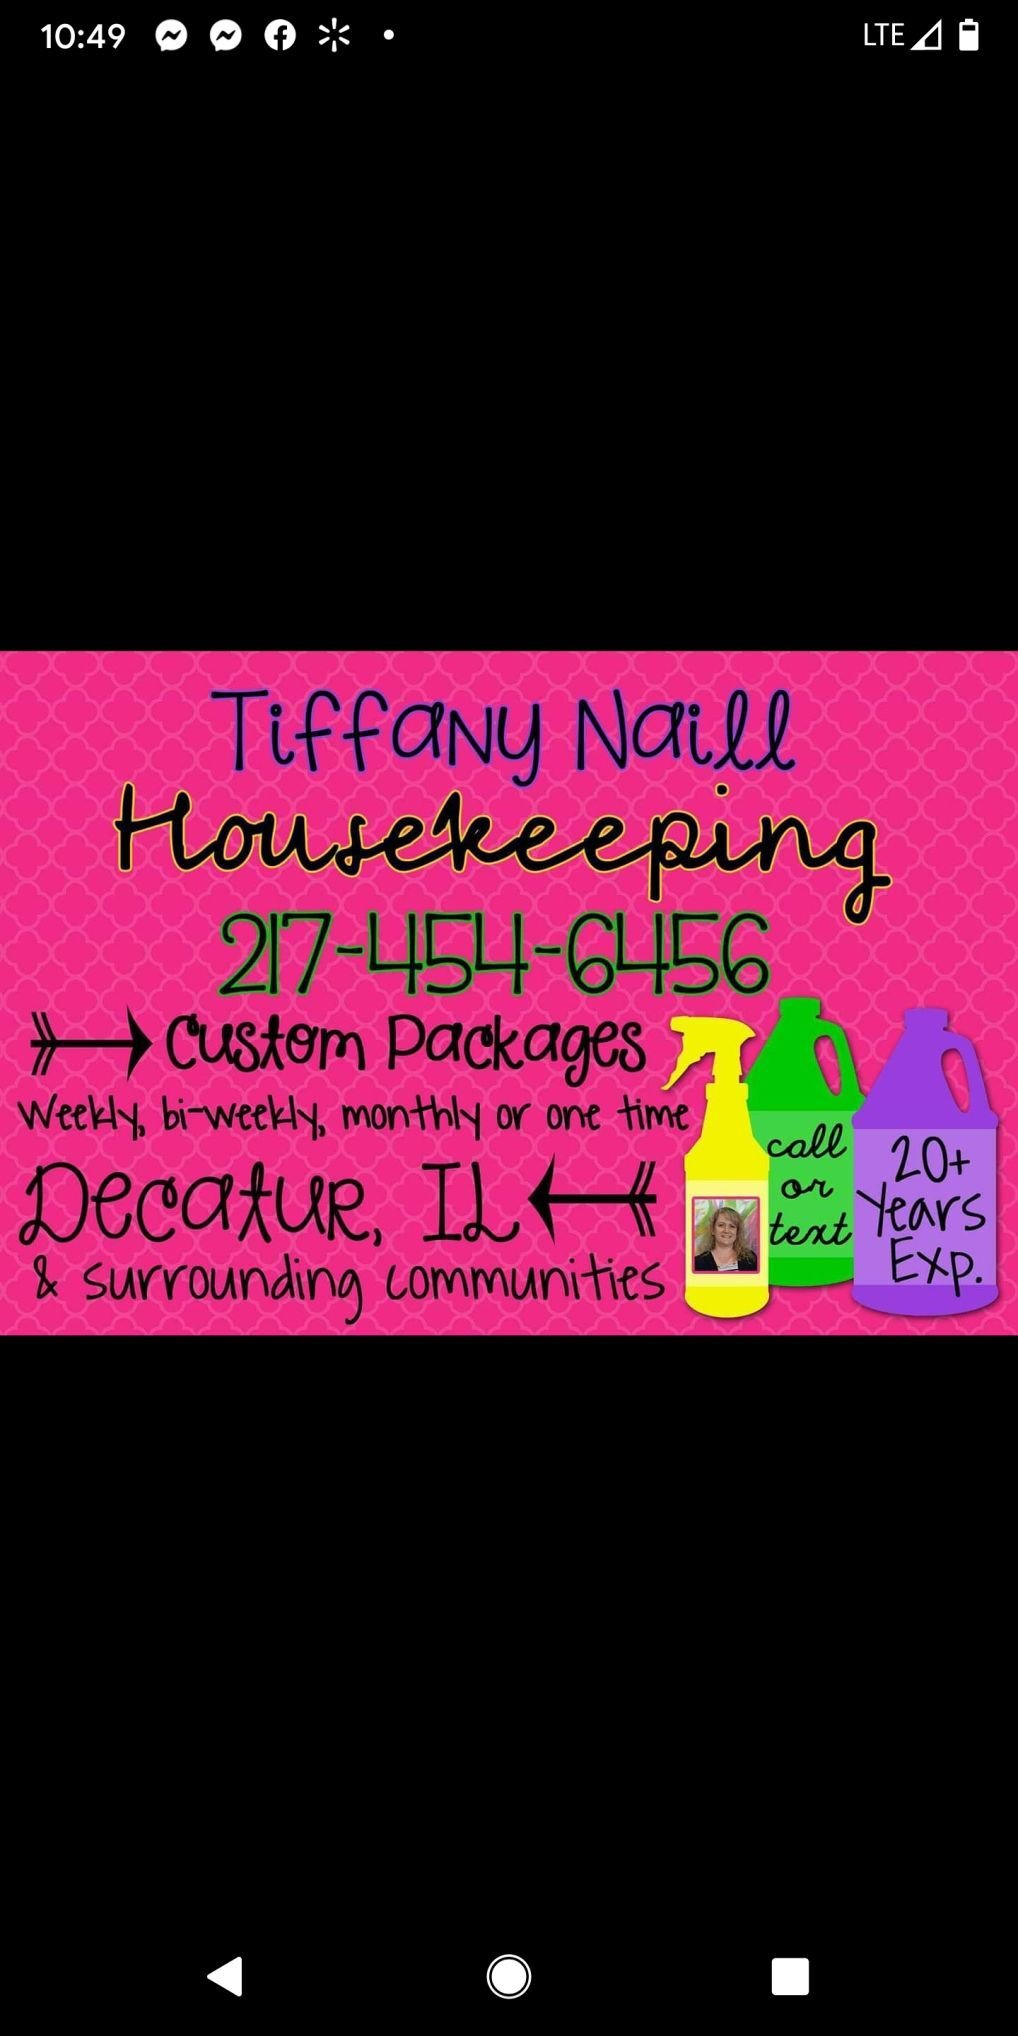 Tiffany Naill cleaning services